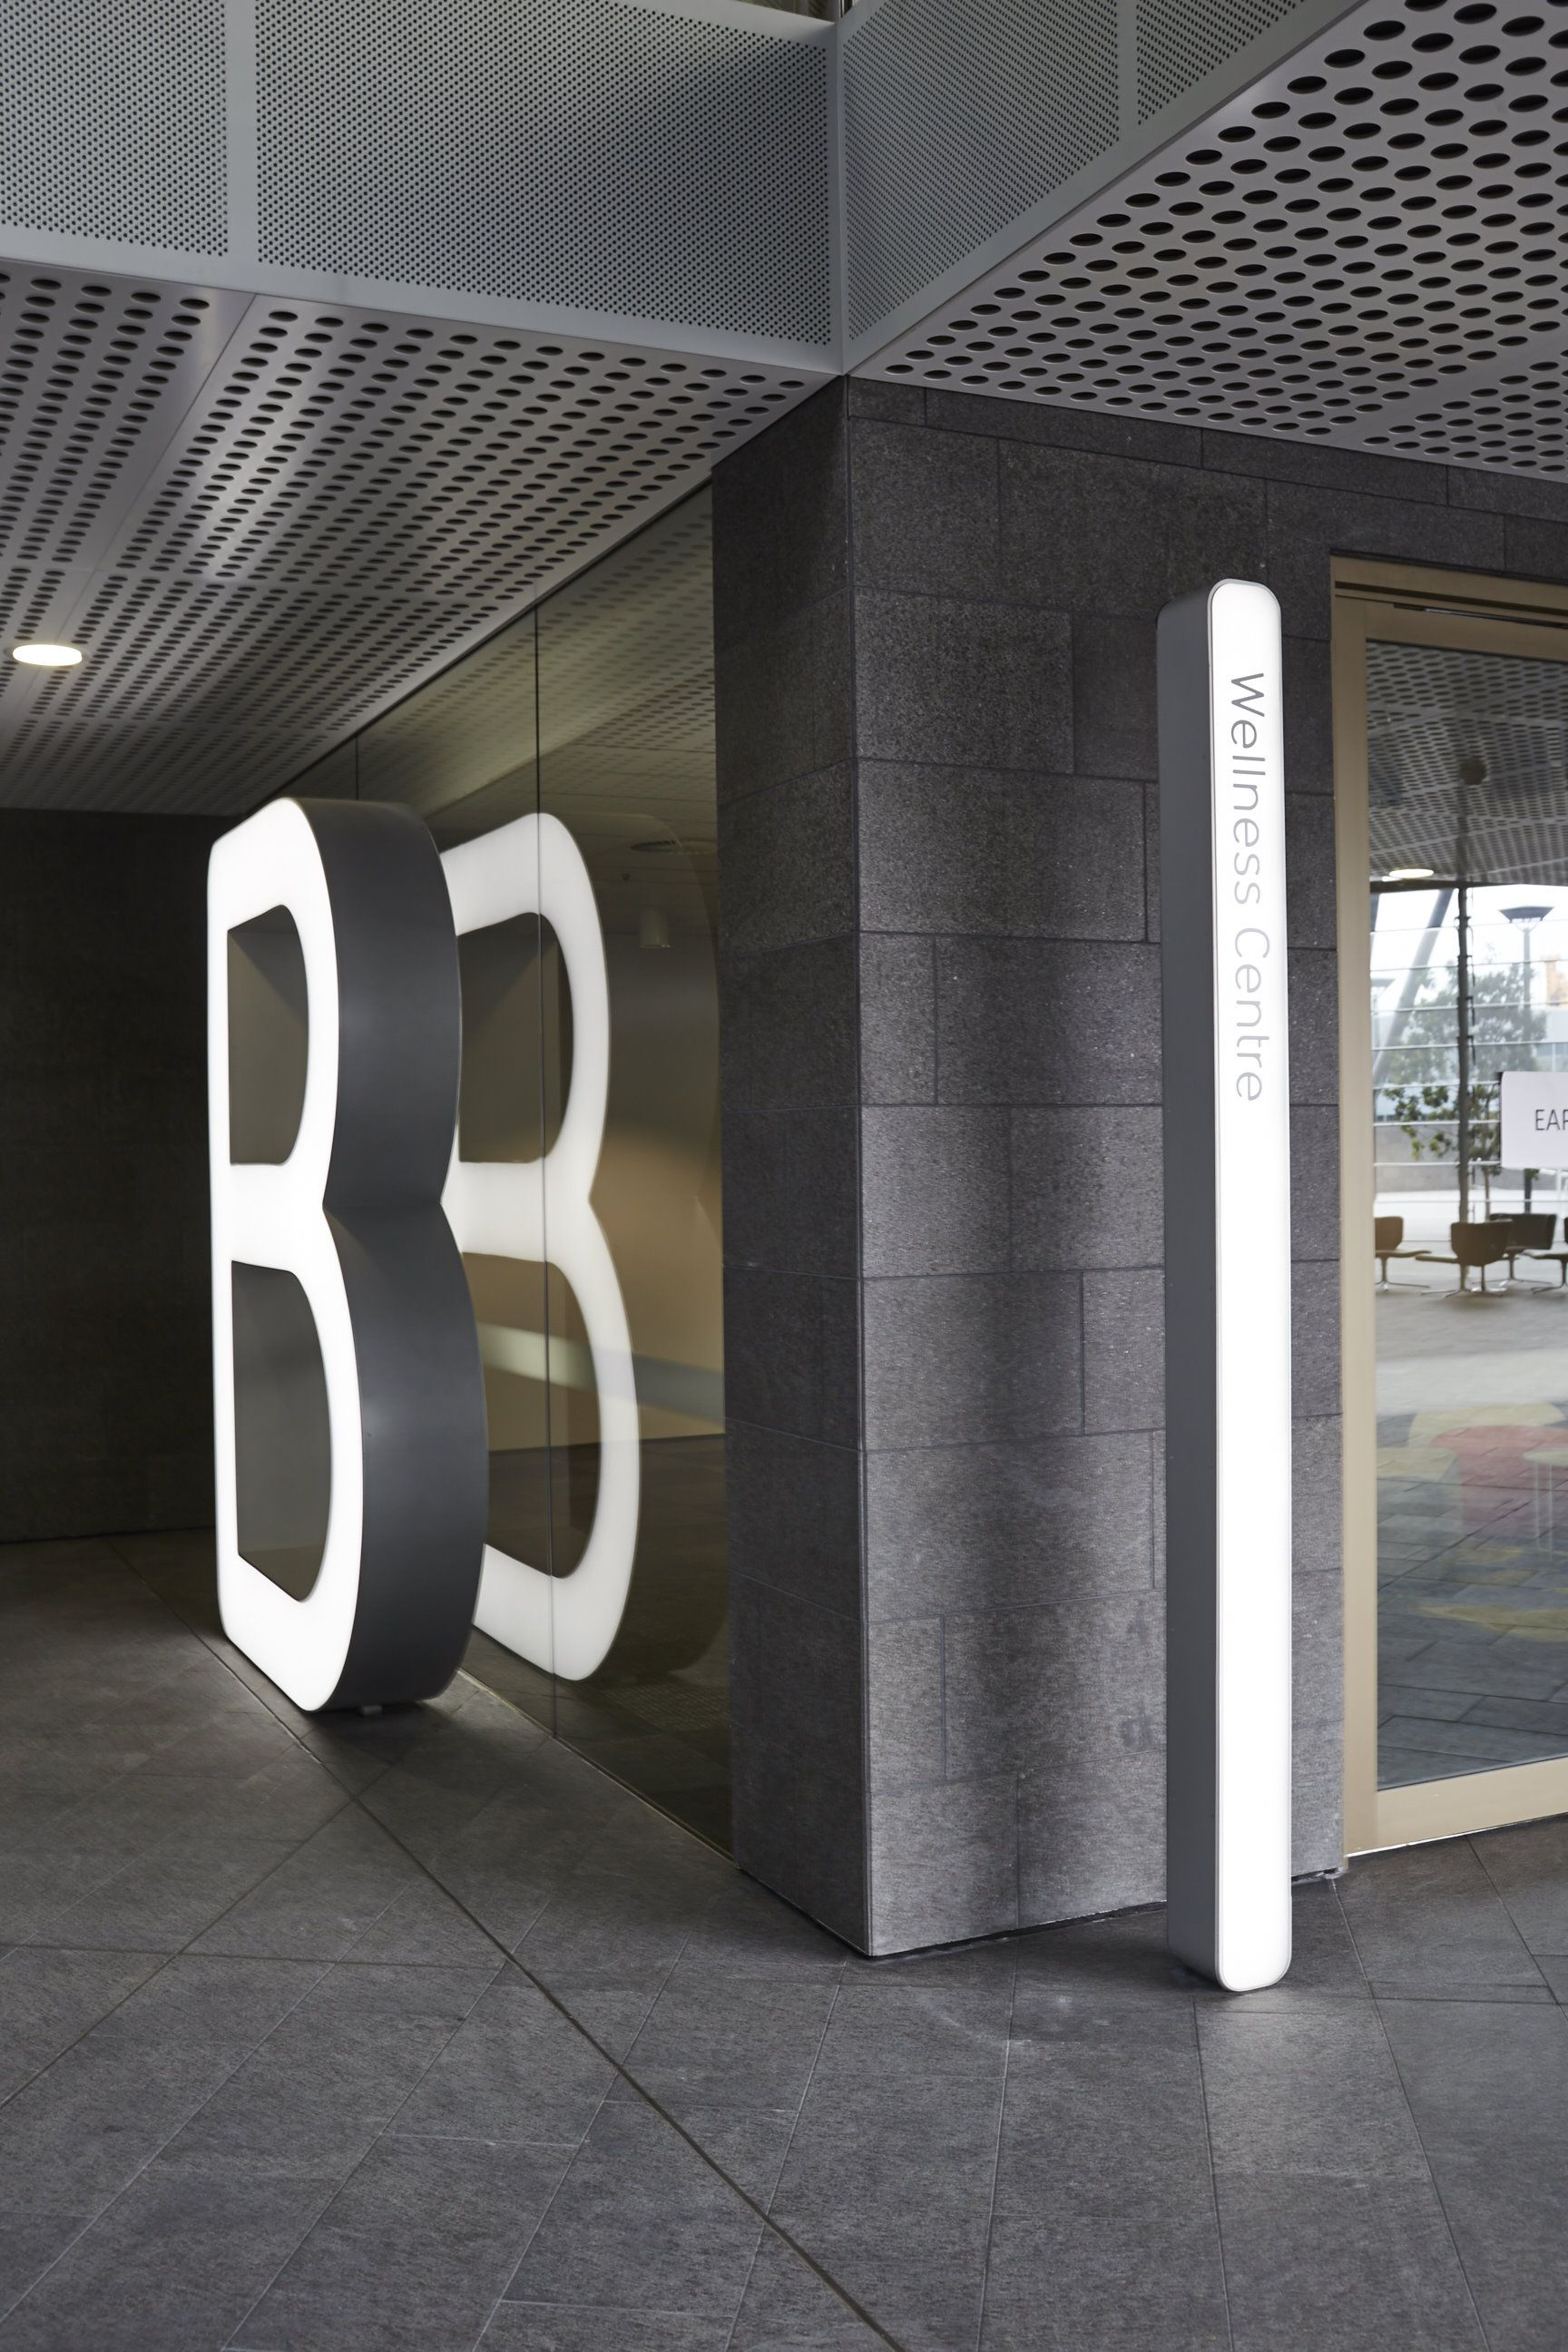 Urbanite designed an integrated signage, wayfinding and environmental branding system for the newly-launched redevelopment of the Qantas HQ in Sydney's Mascot. The redevelopment saw a consolidation of seven disparate buildings across many addresses into one campus style workplace made up of four buildings and connected by a new external spine.